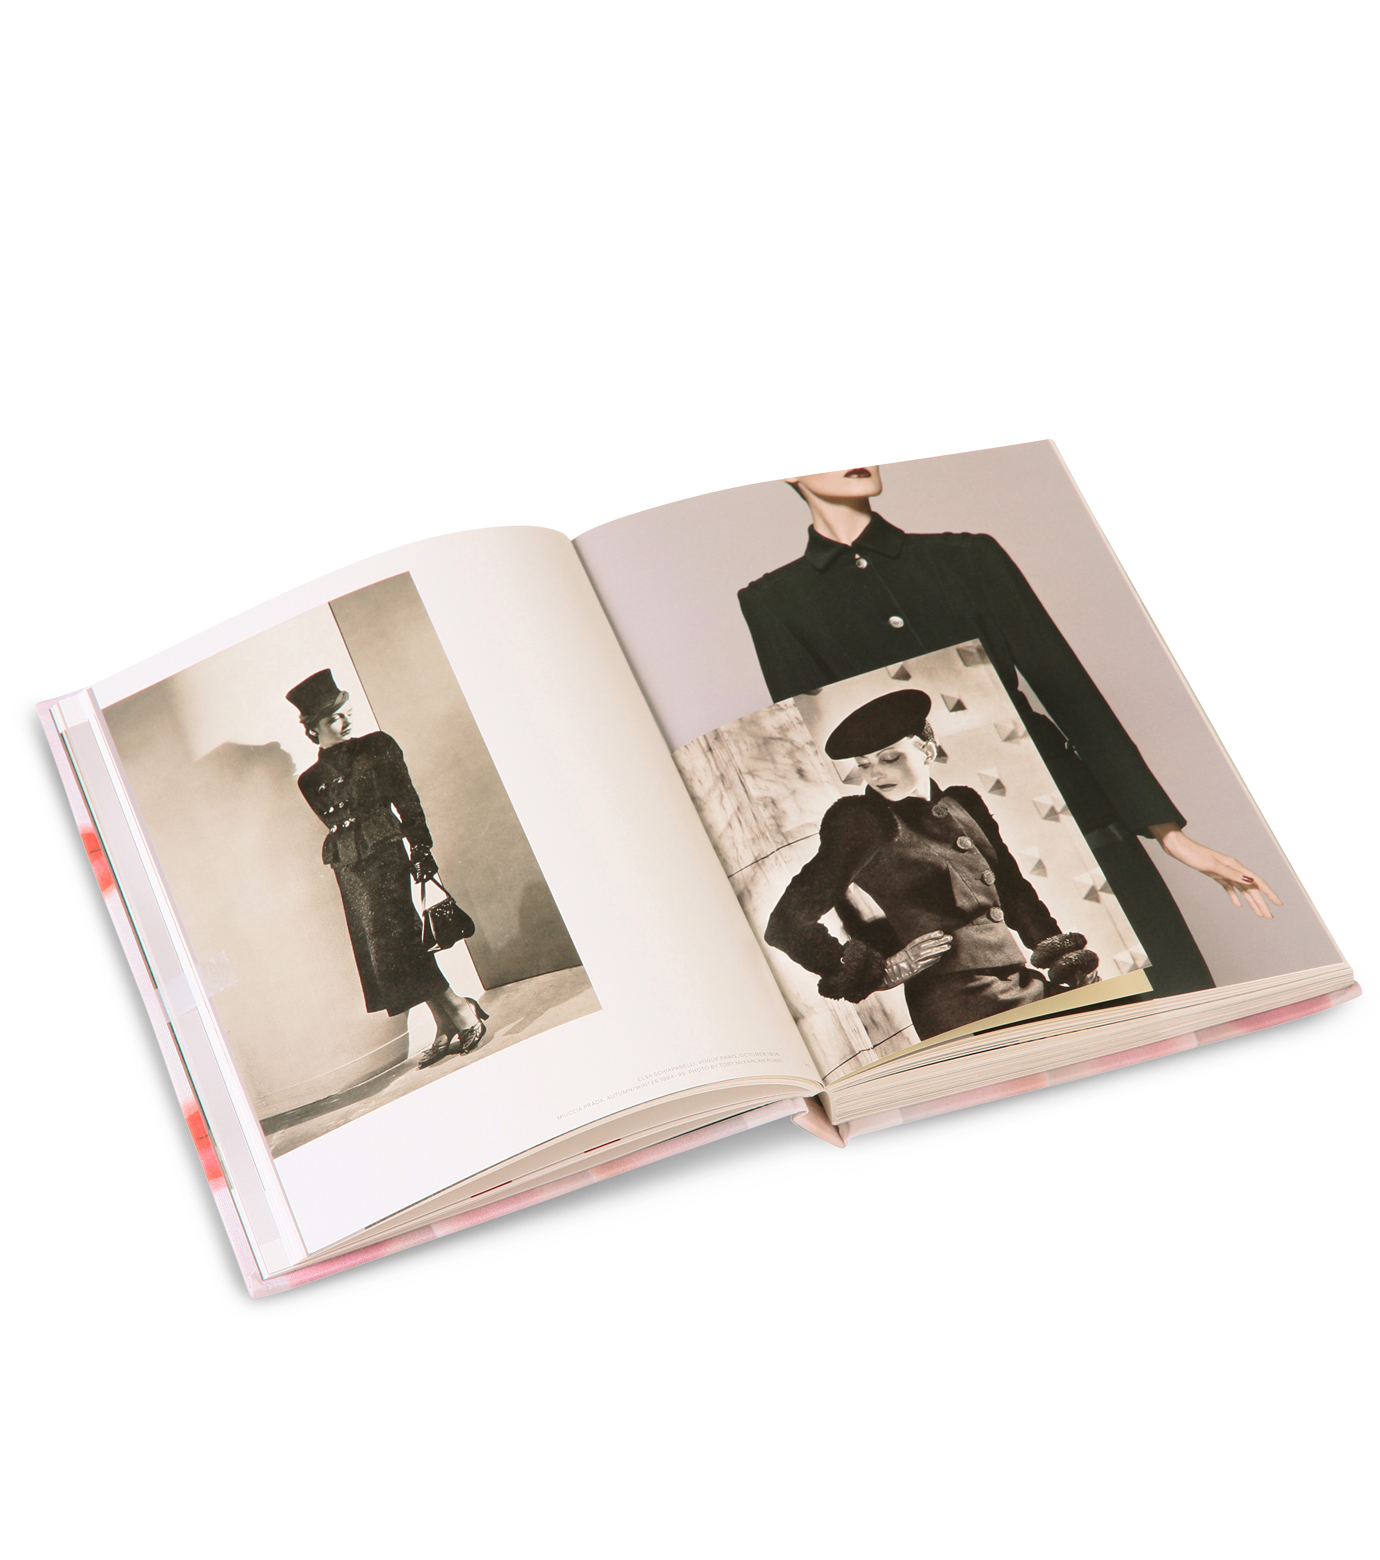 ArtBook(アートブック)のSchiaparelli and prada-RED(インテリア/OTHER-GOODS/interior/OTHER-GOODS)-300-17955-2-62 拡大詳細画像3